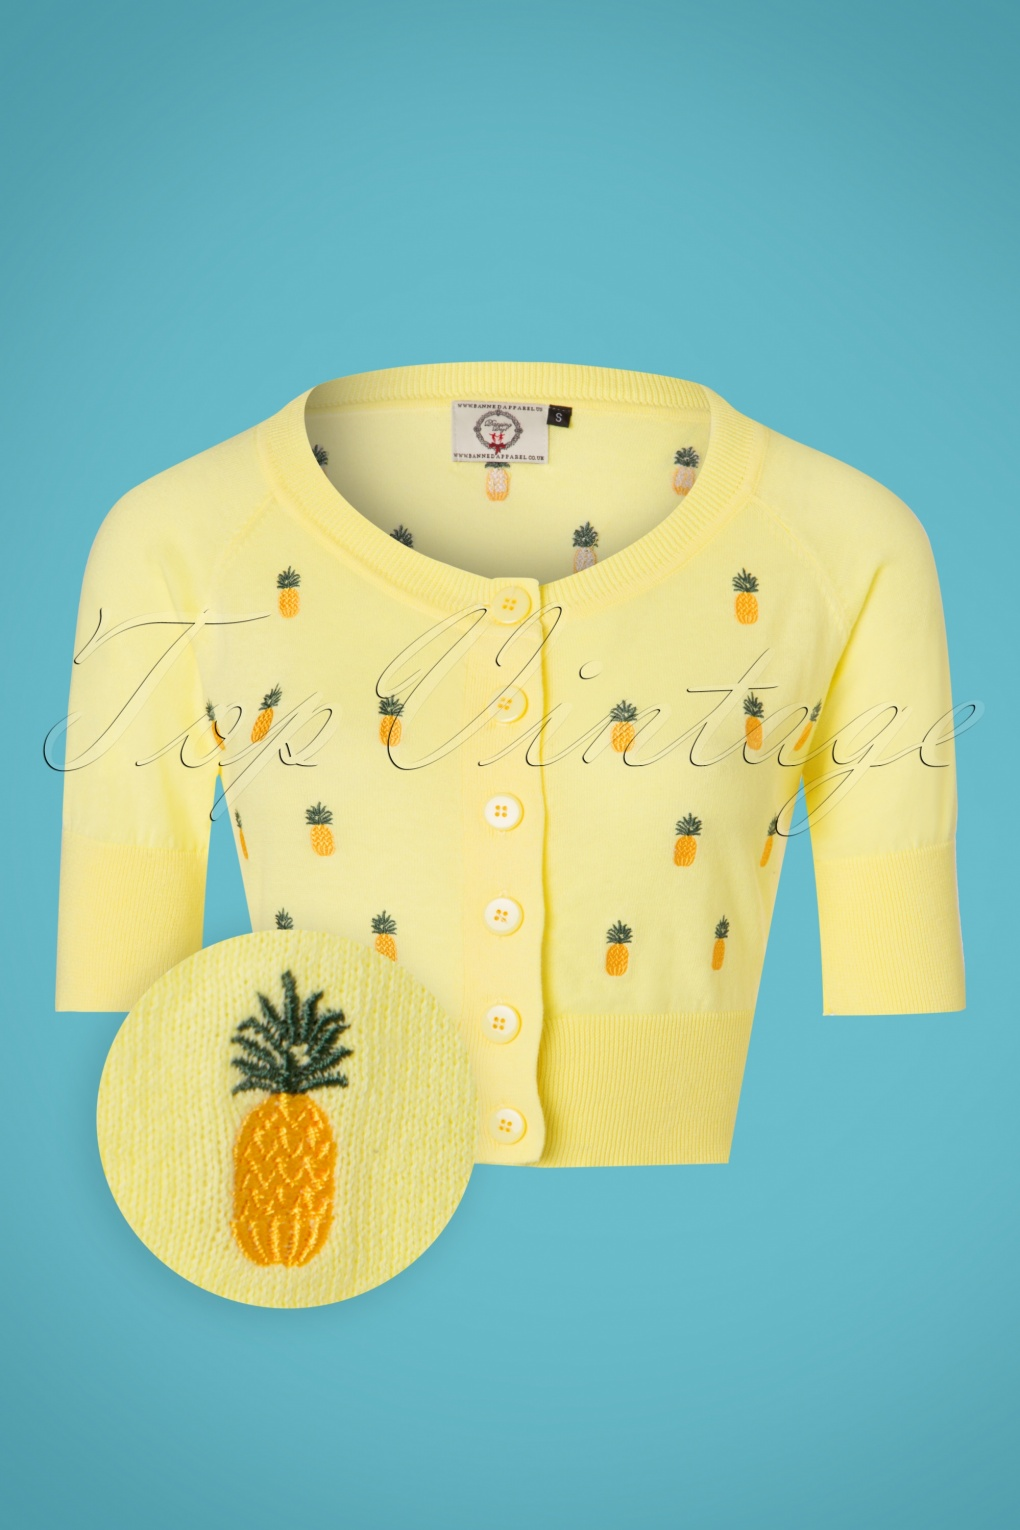 Vintage Sweaters: Cable Knit, Fair Isle Cardigans & Sweaters 50s Pineapple Cardigan in Yellow £34.52 AT vintagedancer.com